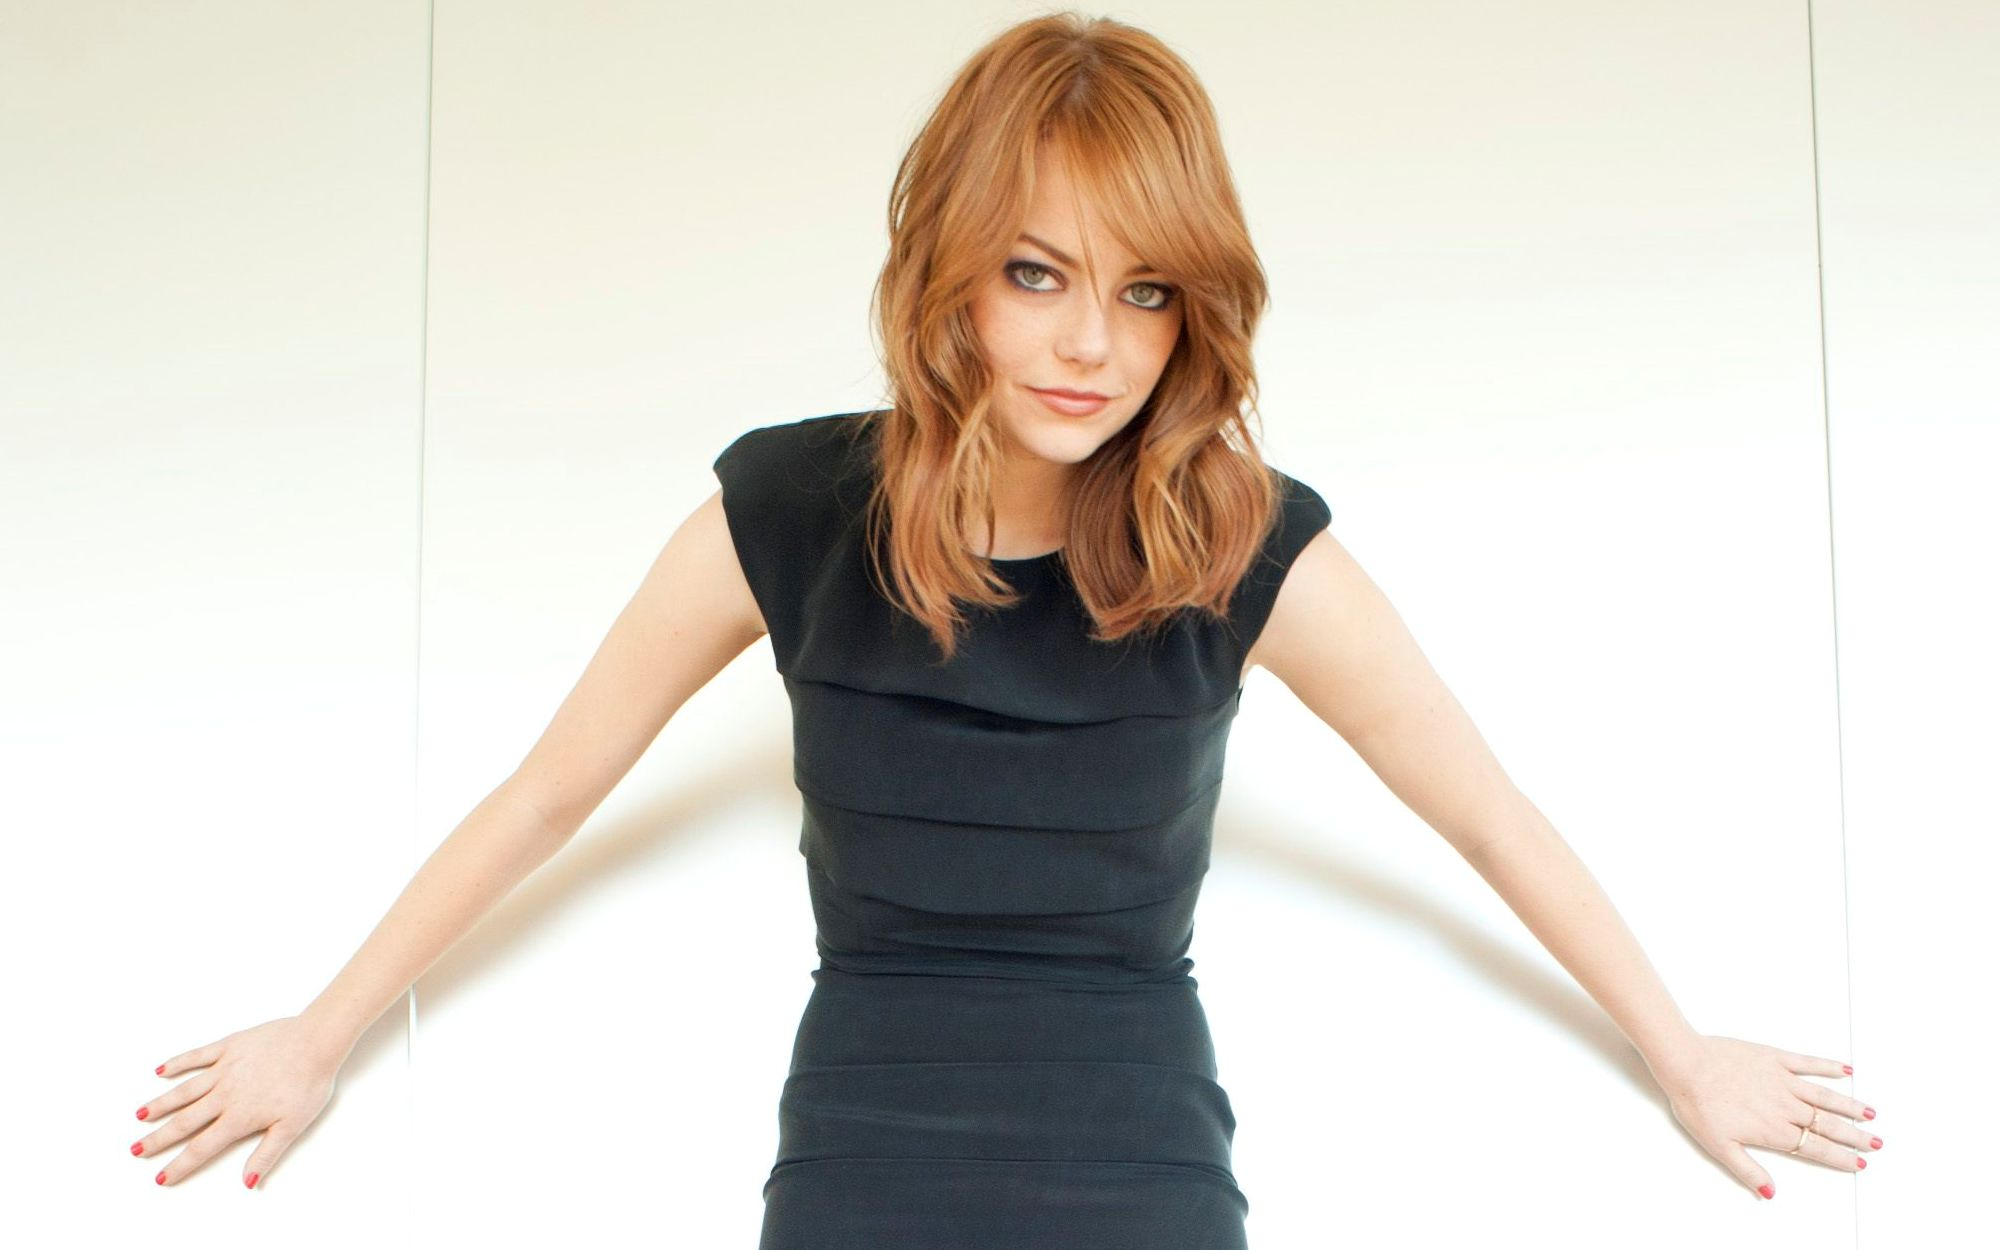 Emma Stone playful - Emma Stone Net Worth, Movies, Family, Boyfriends, Pictures and Wallpapers